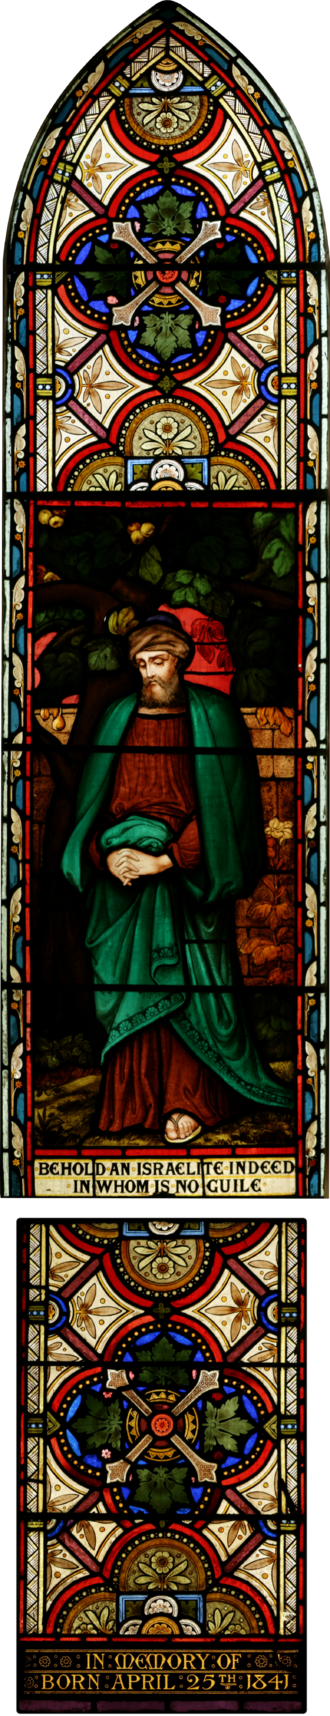 Nathaniel - The biblical Nathanael depicted in stained glass.